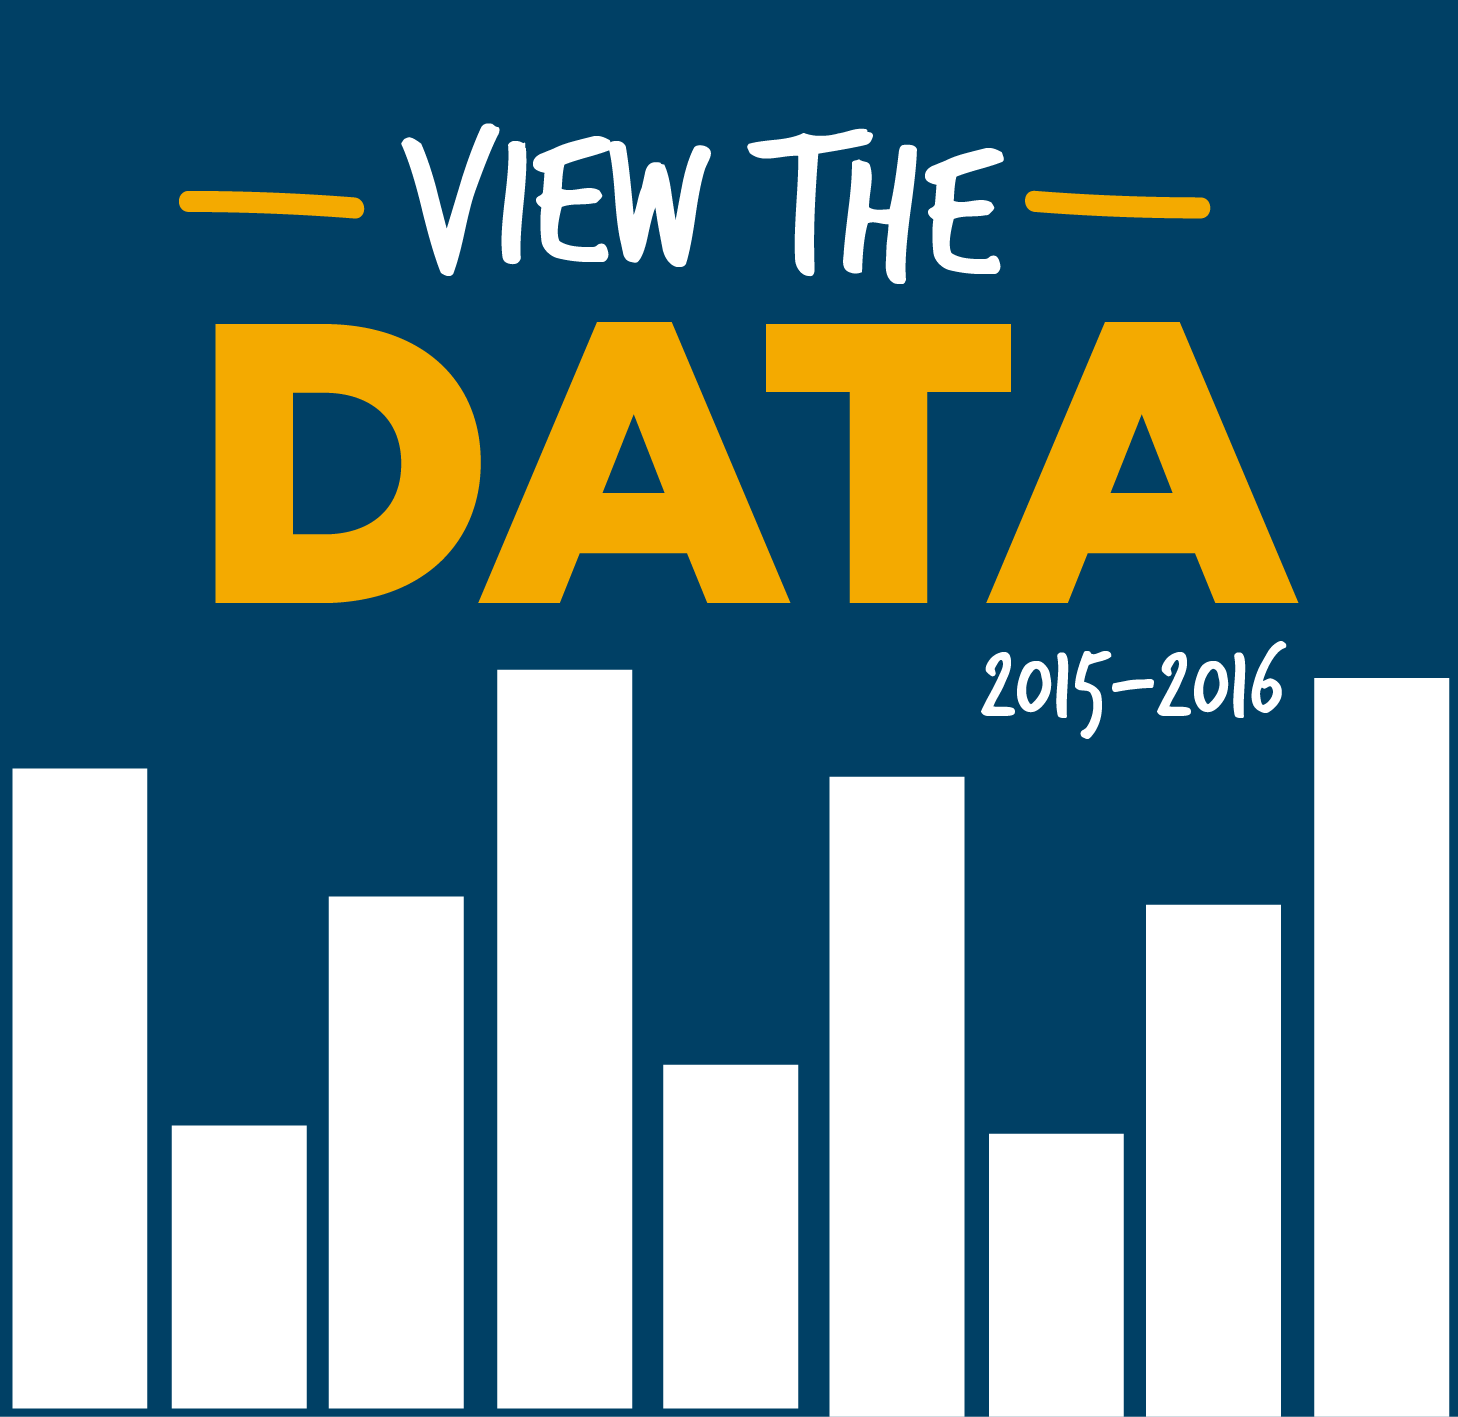 View the Data: 2015-2016